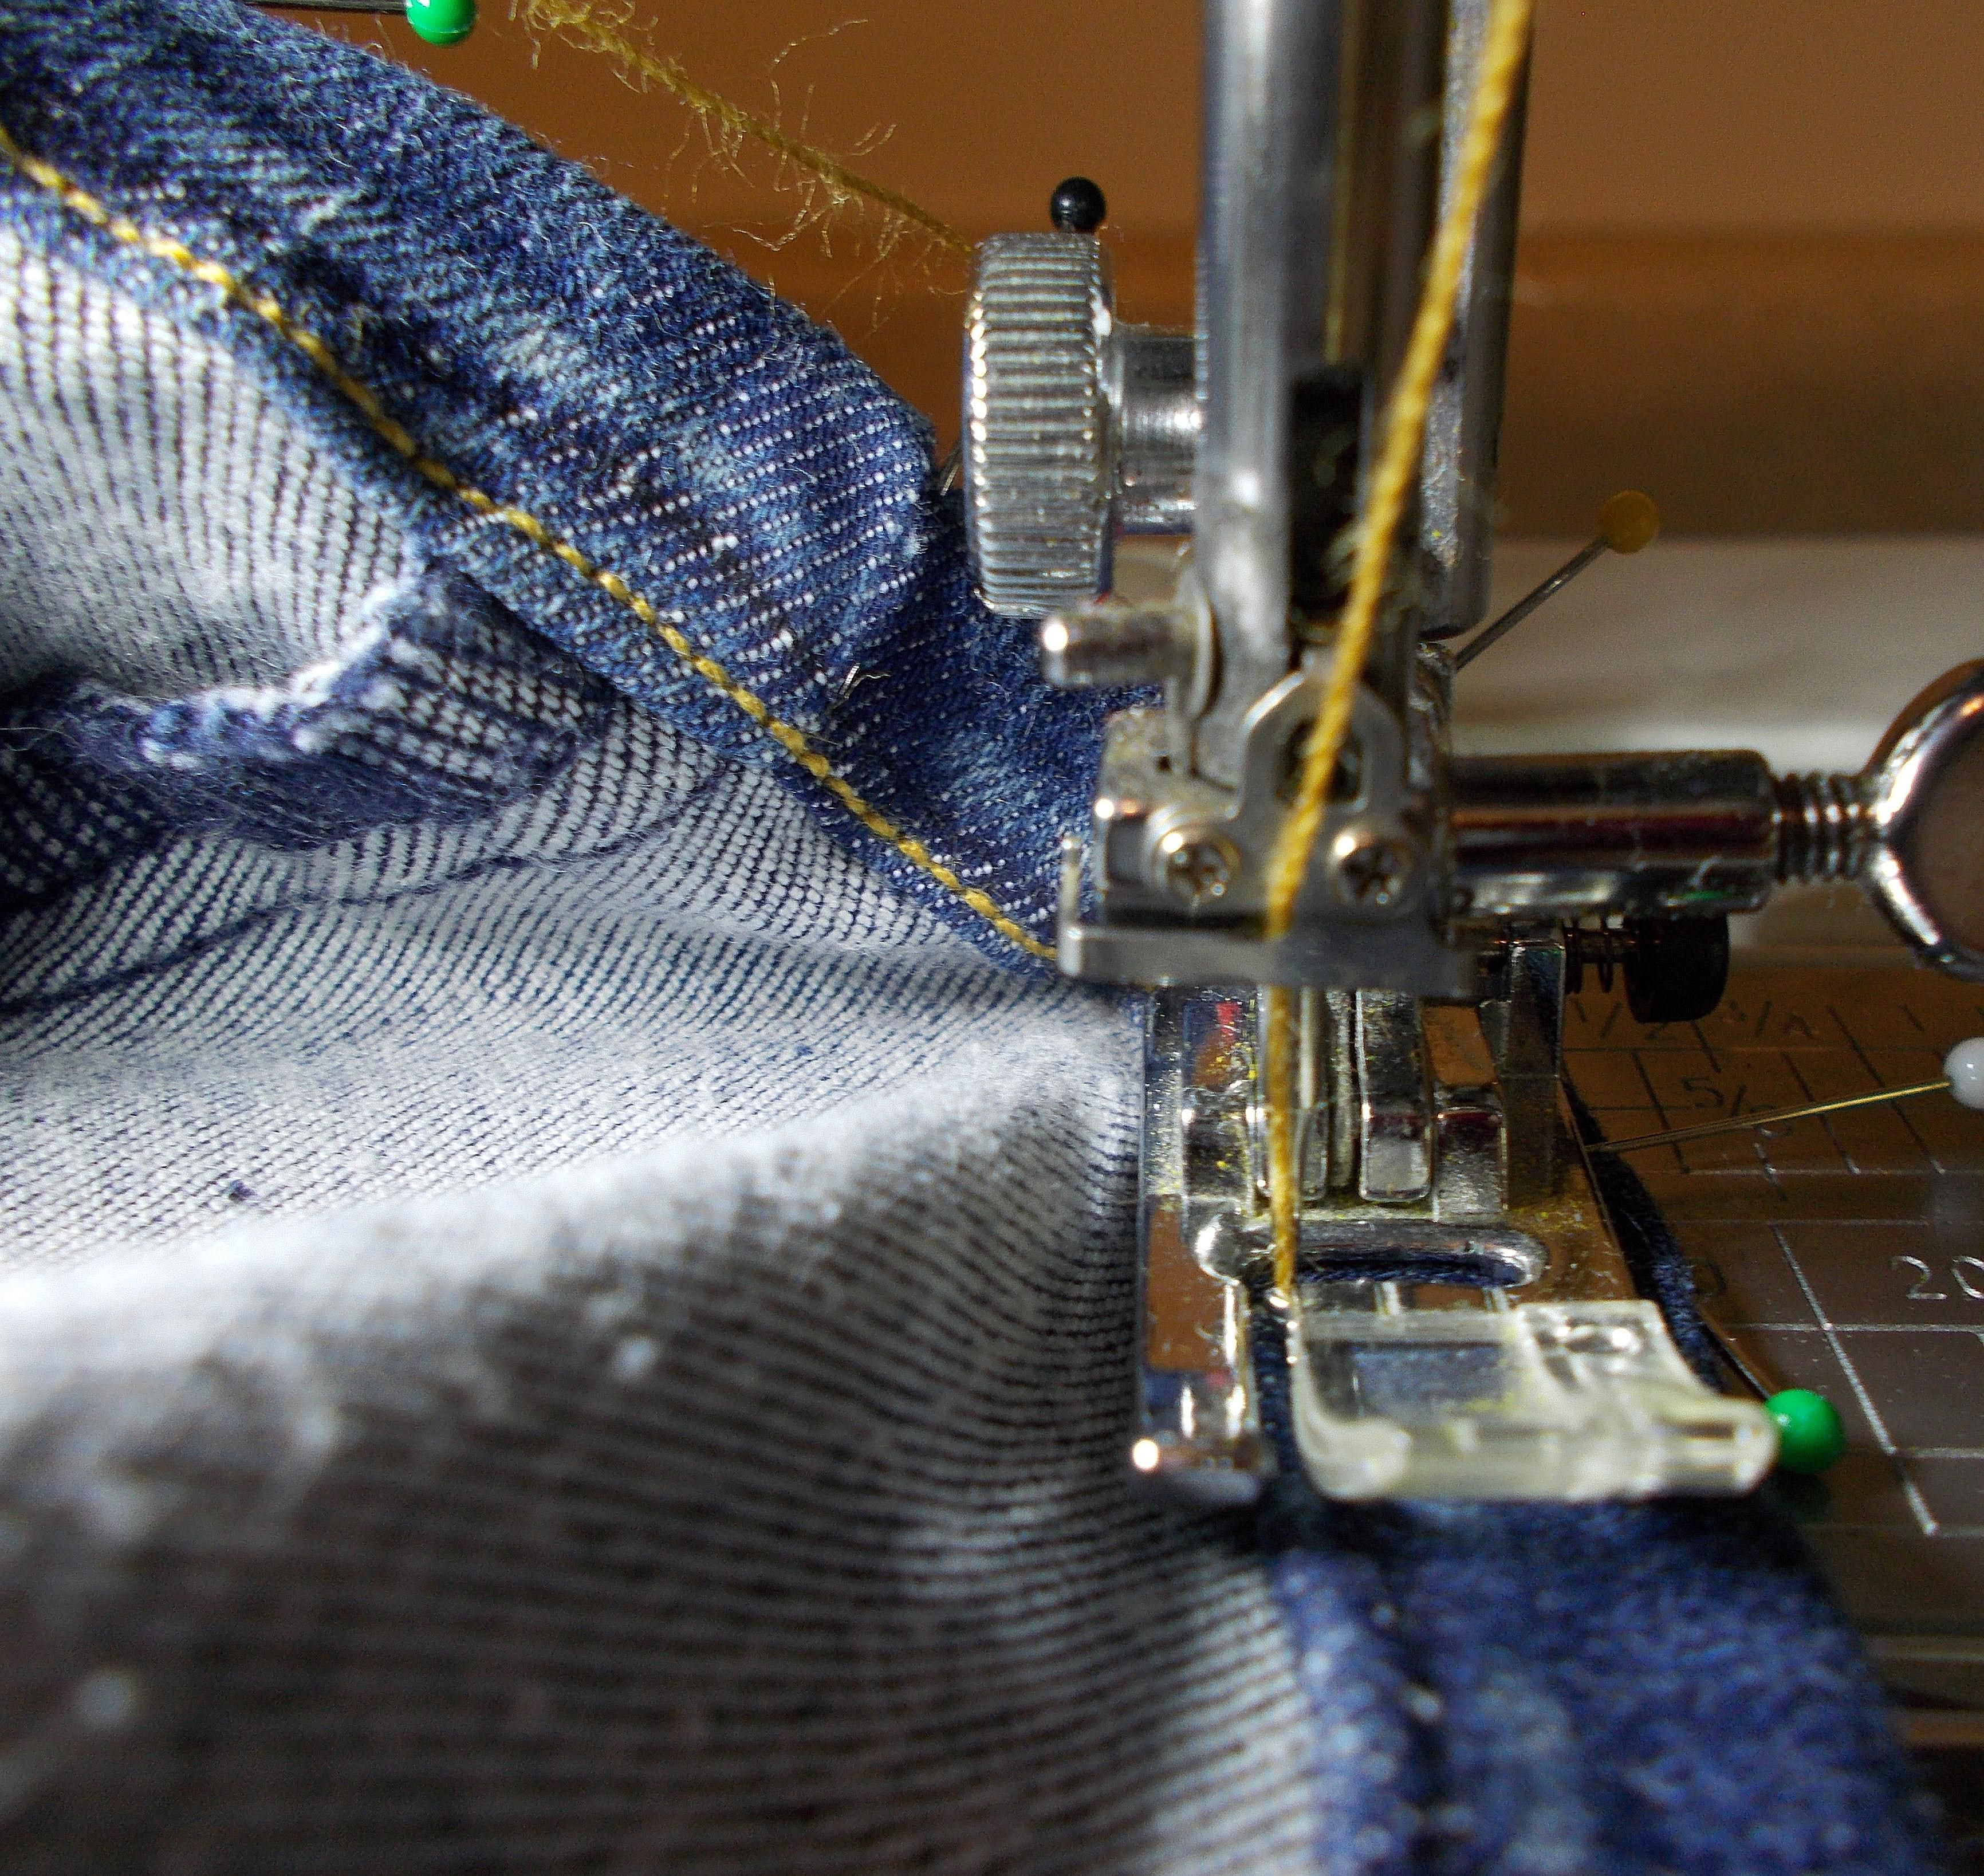 Who Is Talking About 57 Distinct House Electrical Design: How To Hem Jeans And Casual Clothing